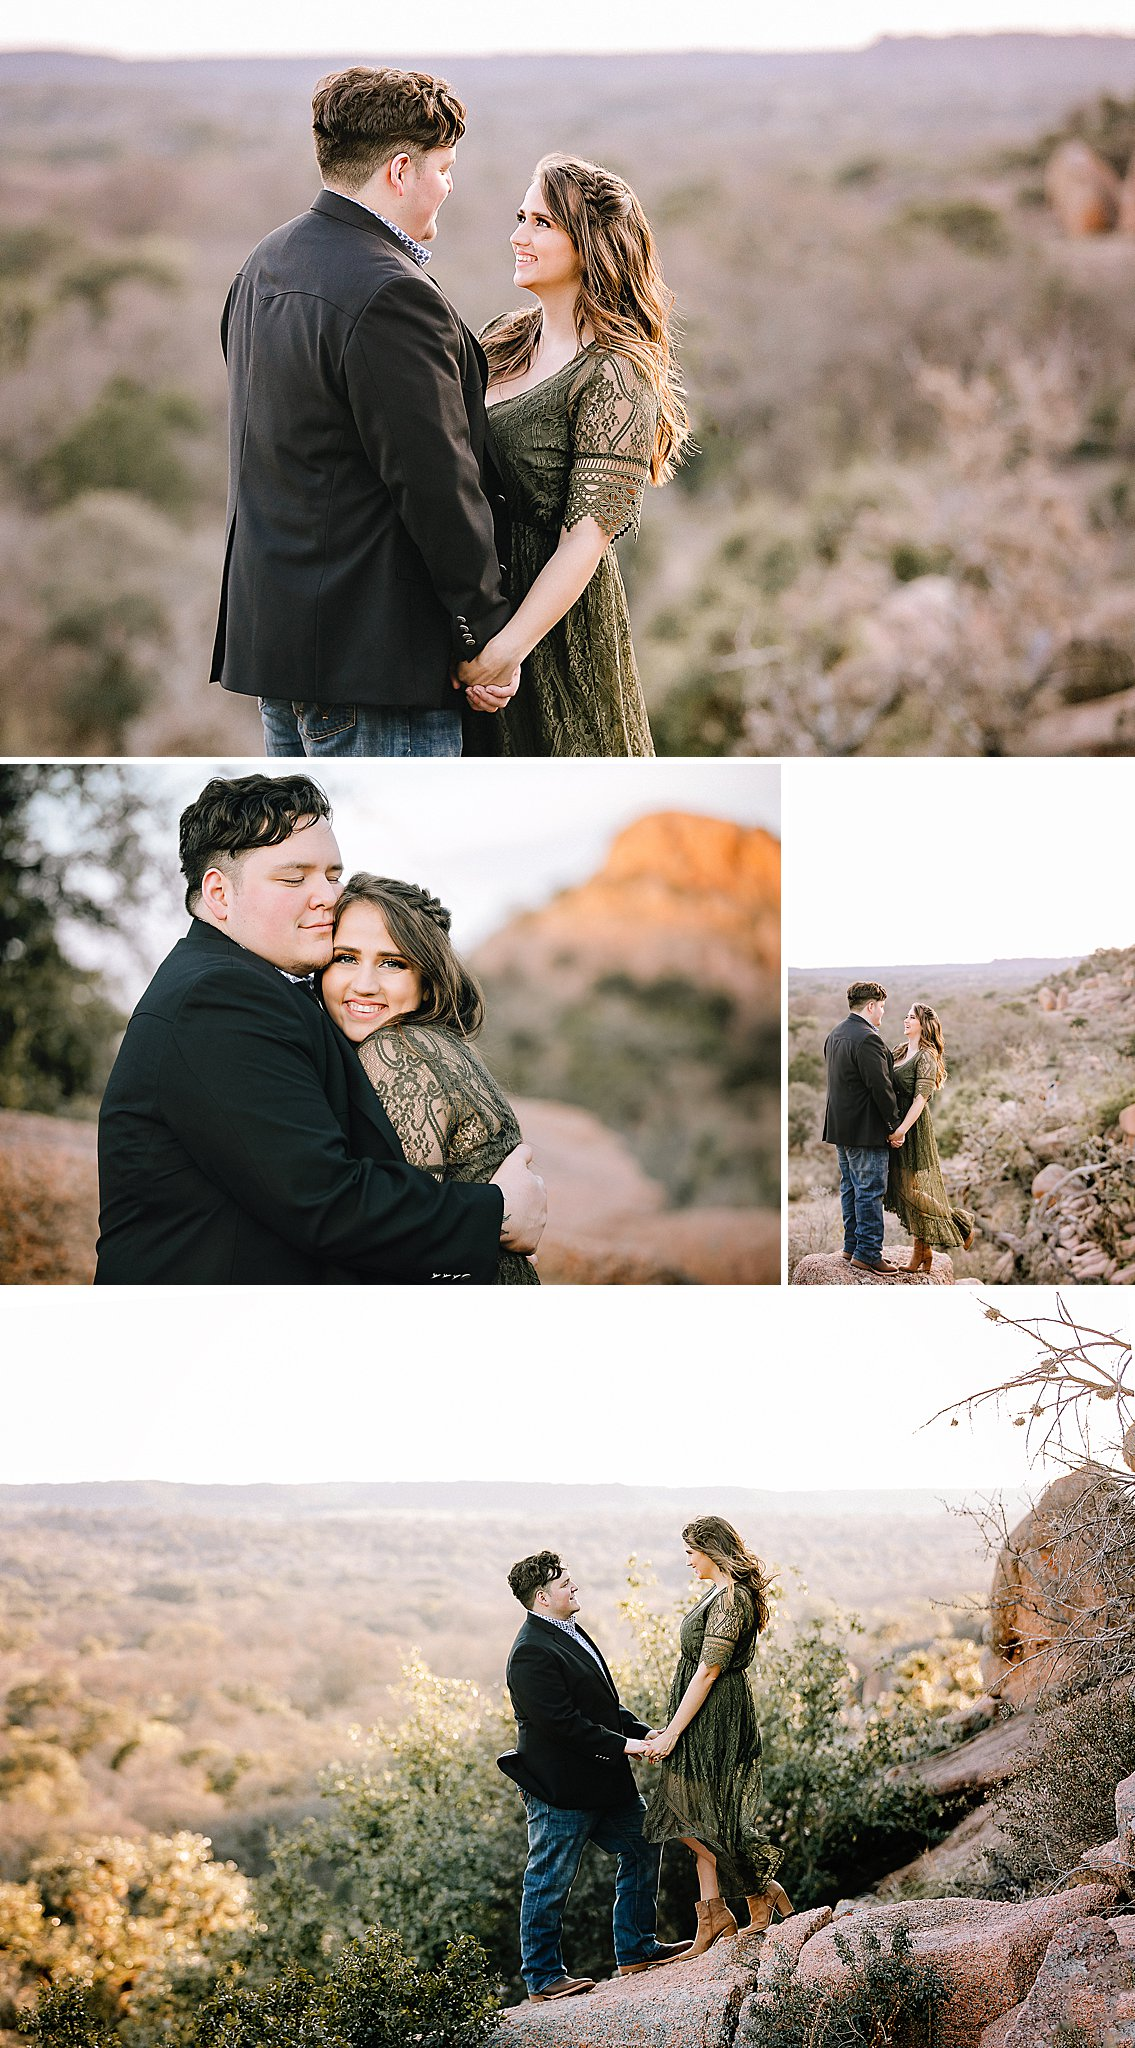 Carly-Barton-Photography-Fredericksburg-Texas-Engagement-Session-Enchanted-Rock-Photos_0017.jpg